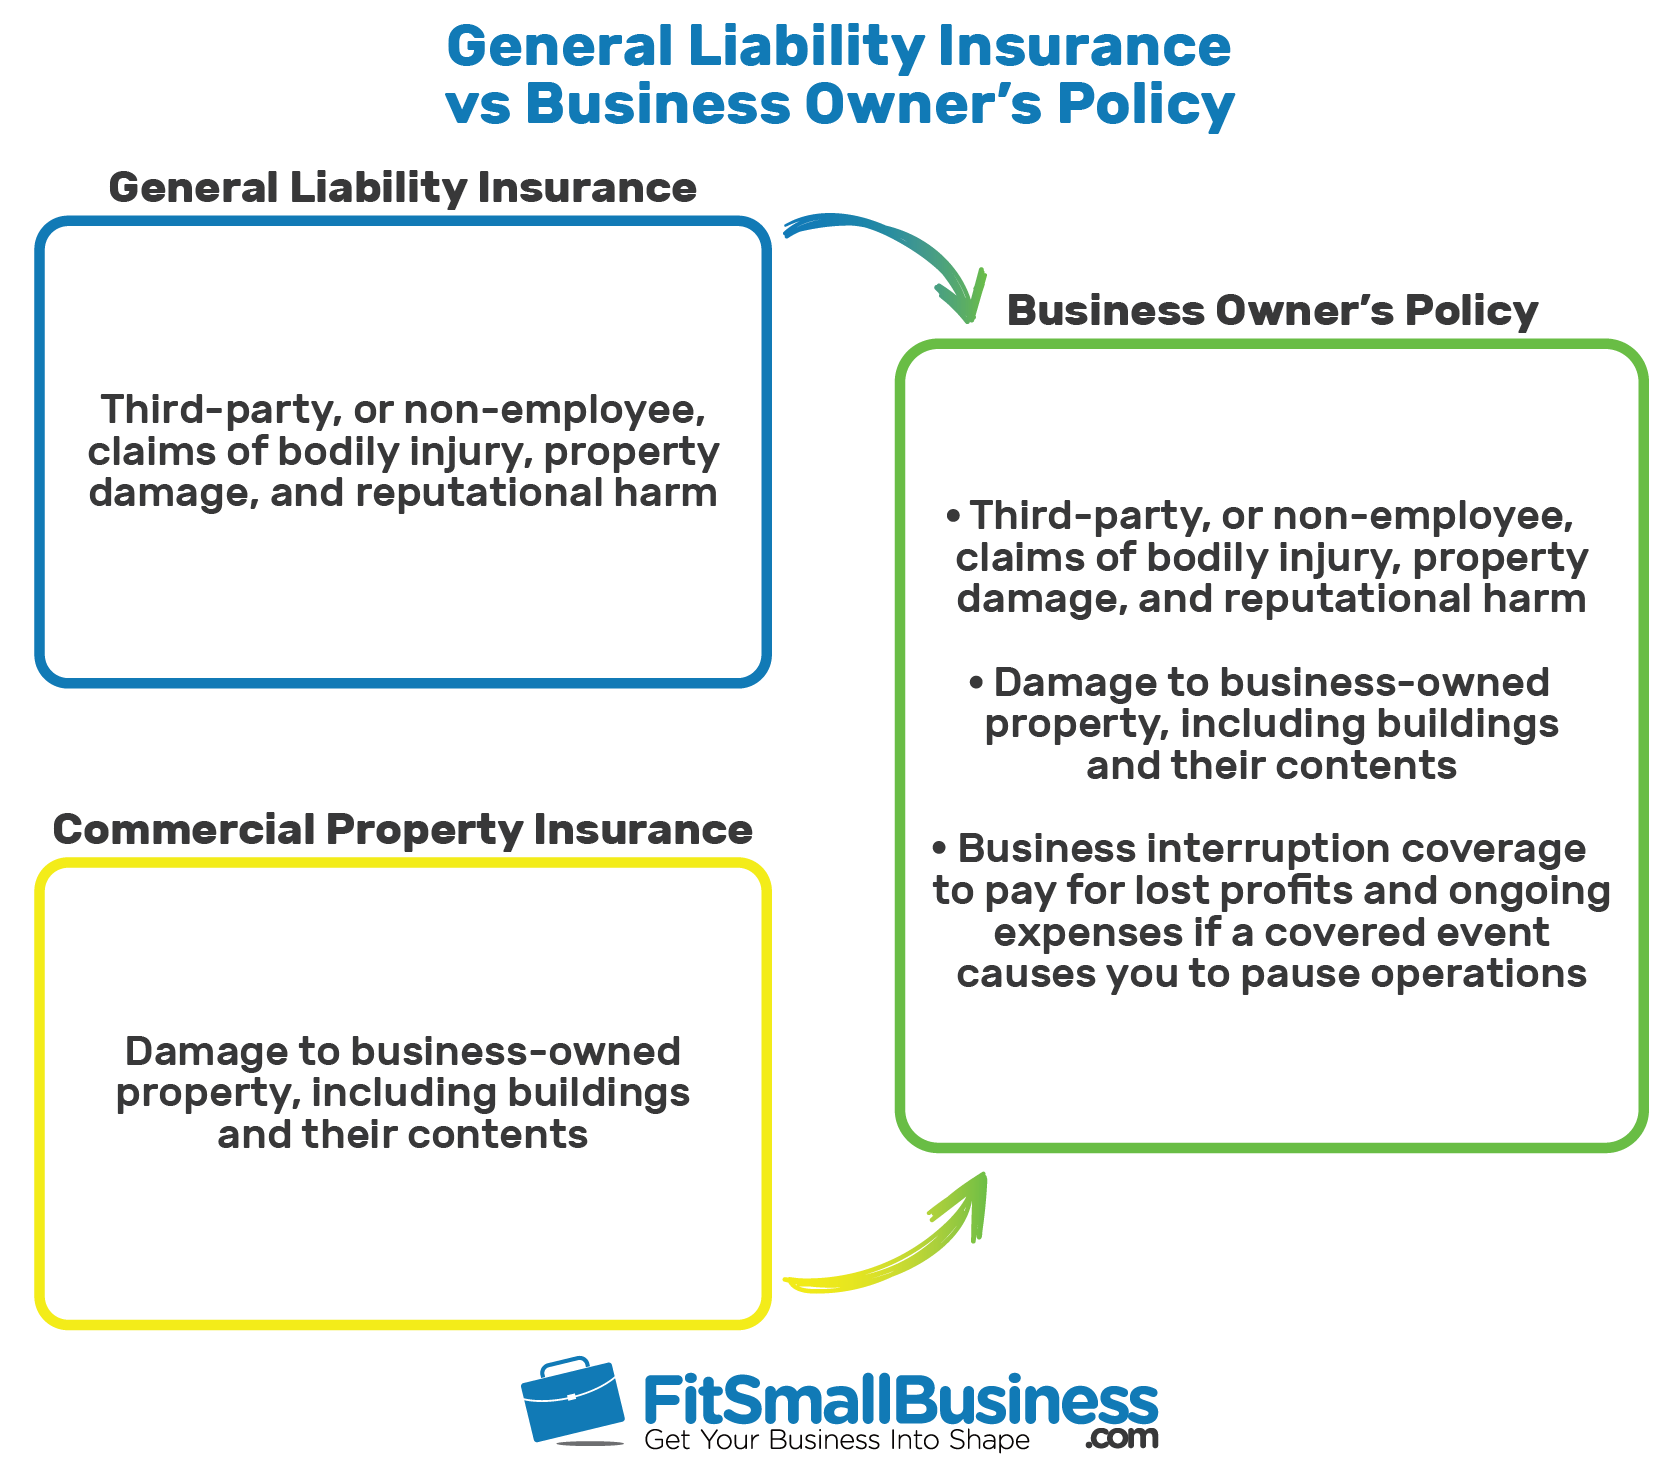 an infographic showing the difference between general liability insurance and a business owners policy